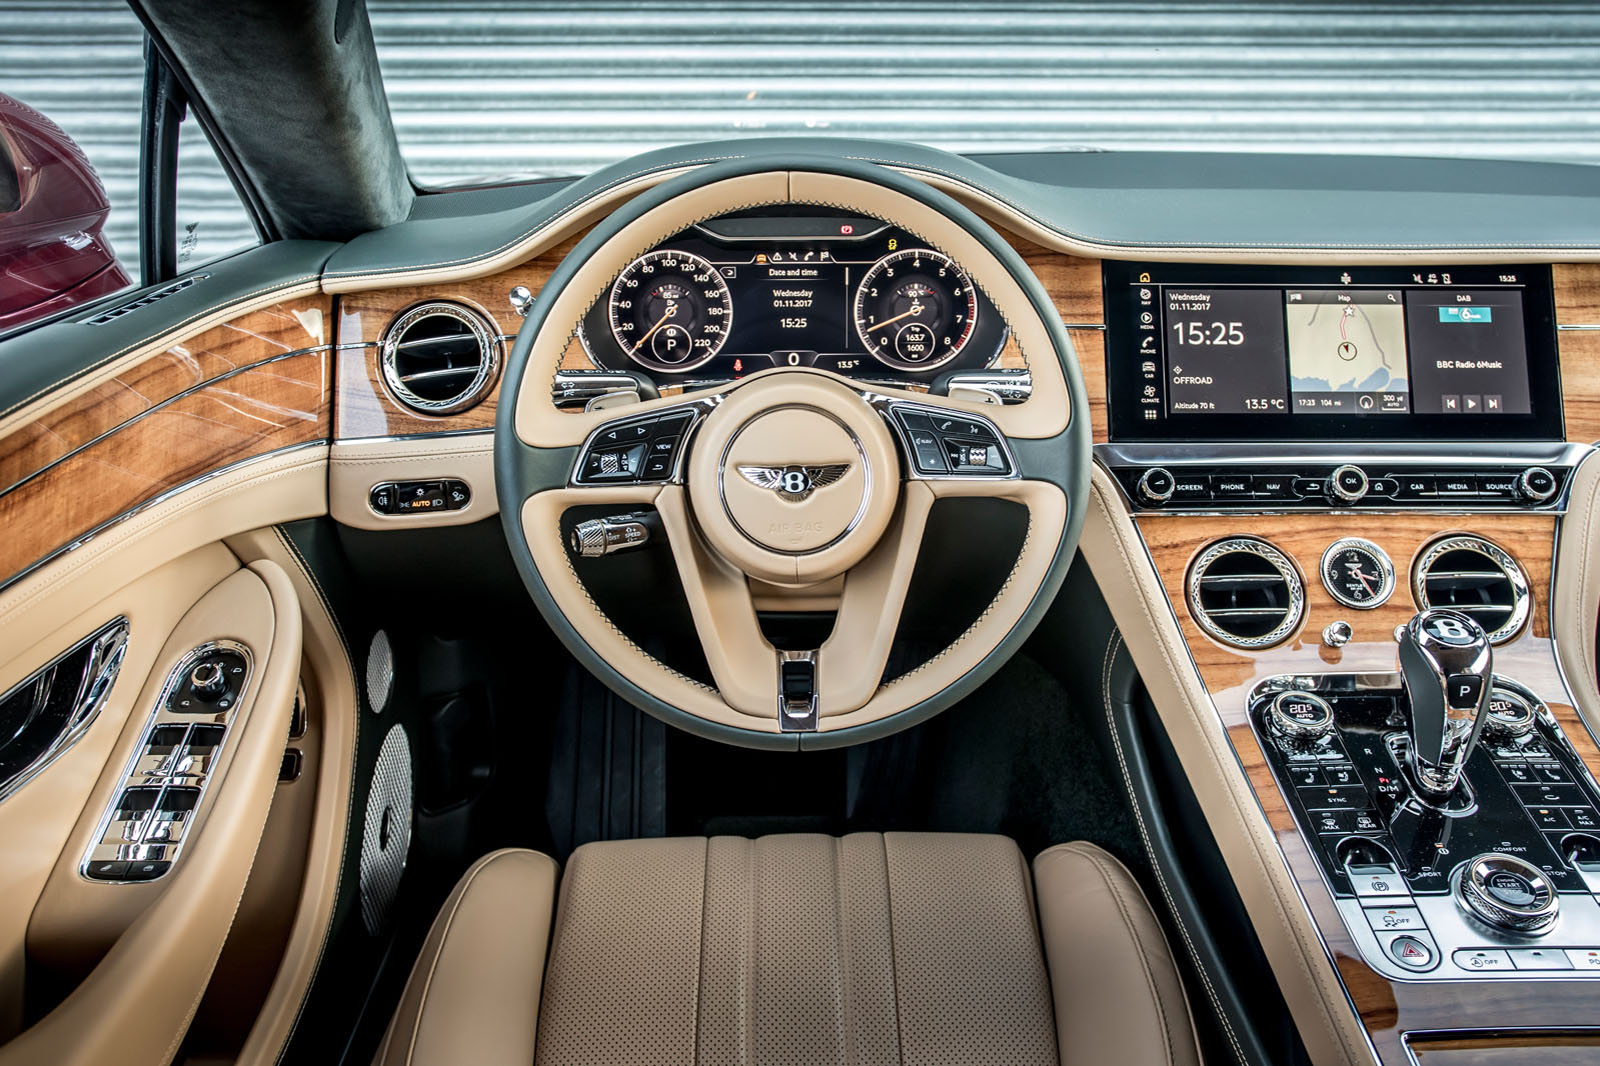 2018 Bentley Continental Gt First Drive Autocar Automotive Circuit Tester 2017 Best Cars Reviews Granted If Aston Decided It Too Wanted To Do More Grand And Less Touring Perhaps Would Make Its Interior Feel Like This But The Good Things About